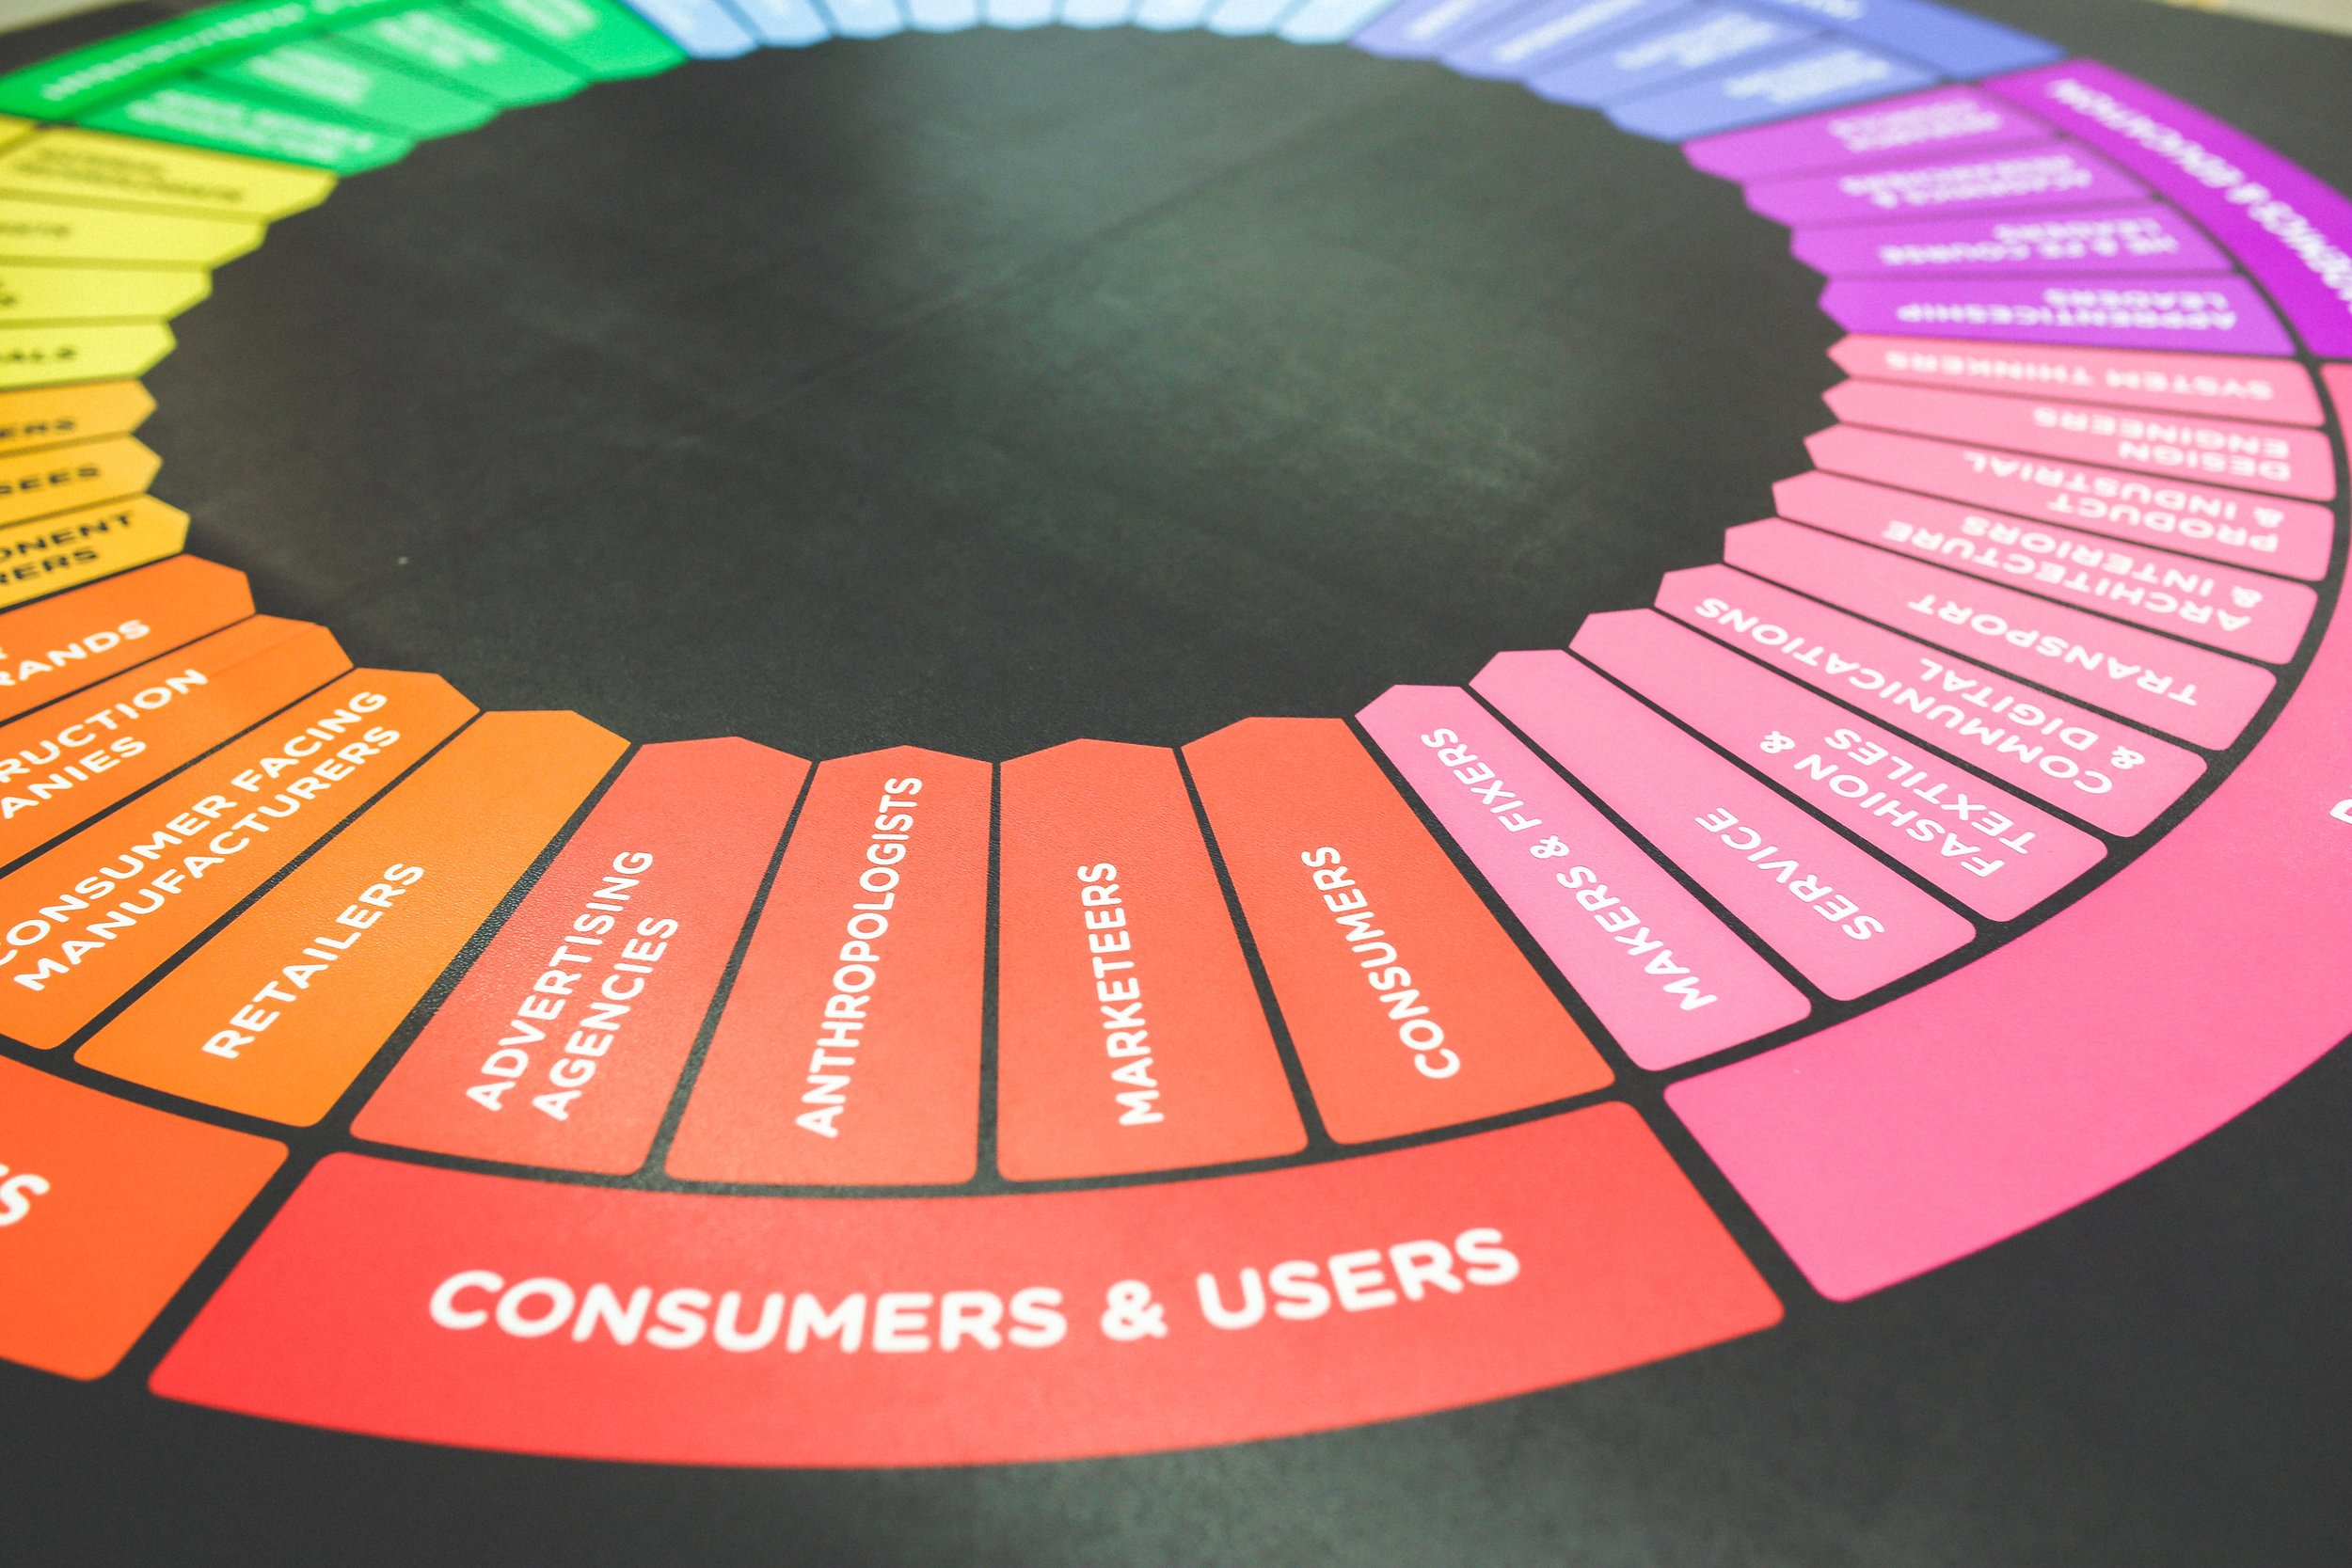 Above is a colour coded diagram that demonstrates who could be doing research on your consumers and users e.g. Advertising agencies, anthropologists, marketers, and consumers.